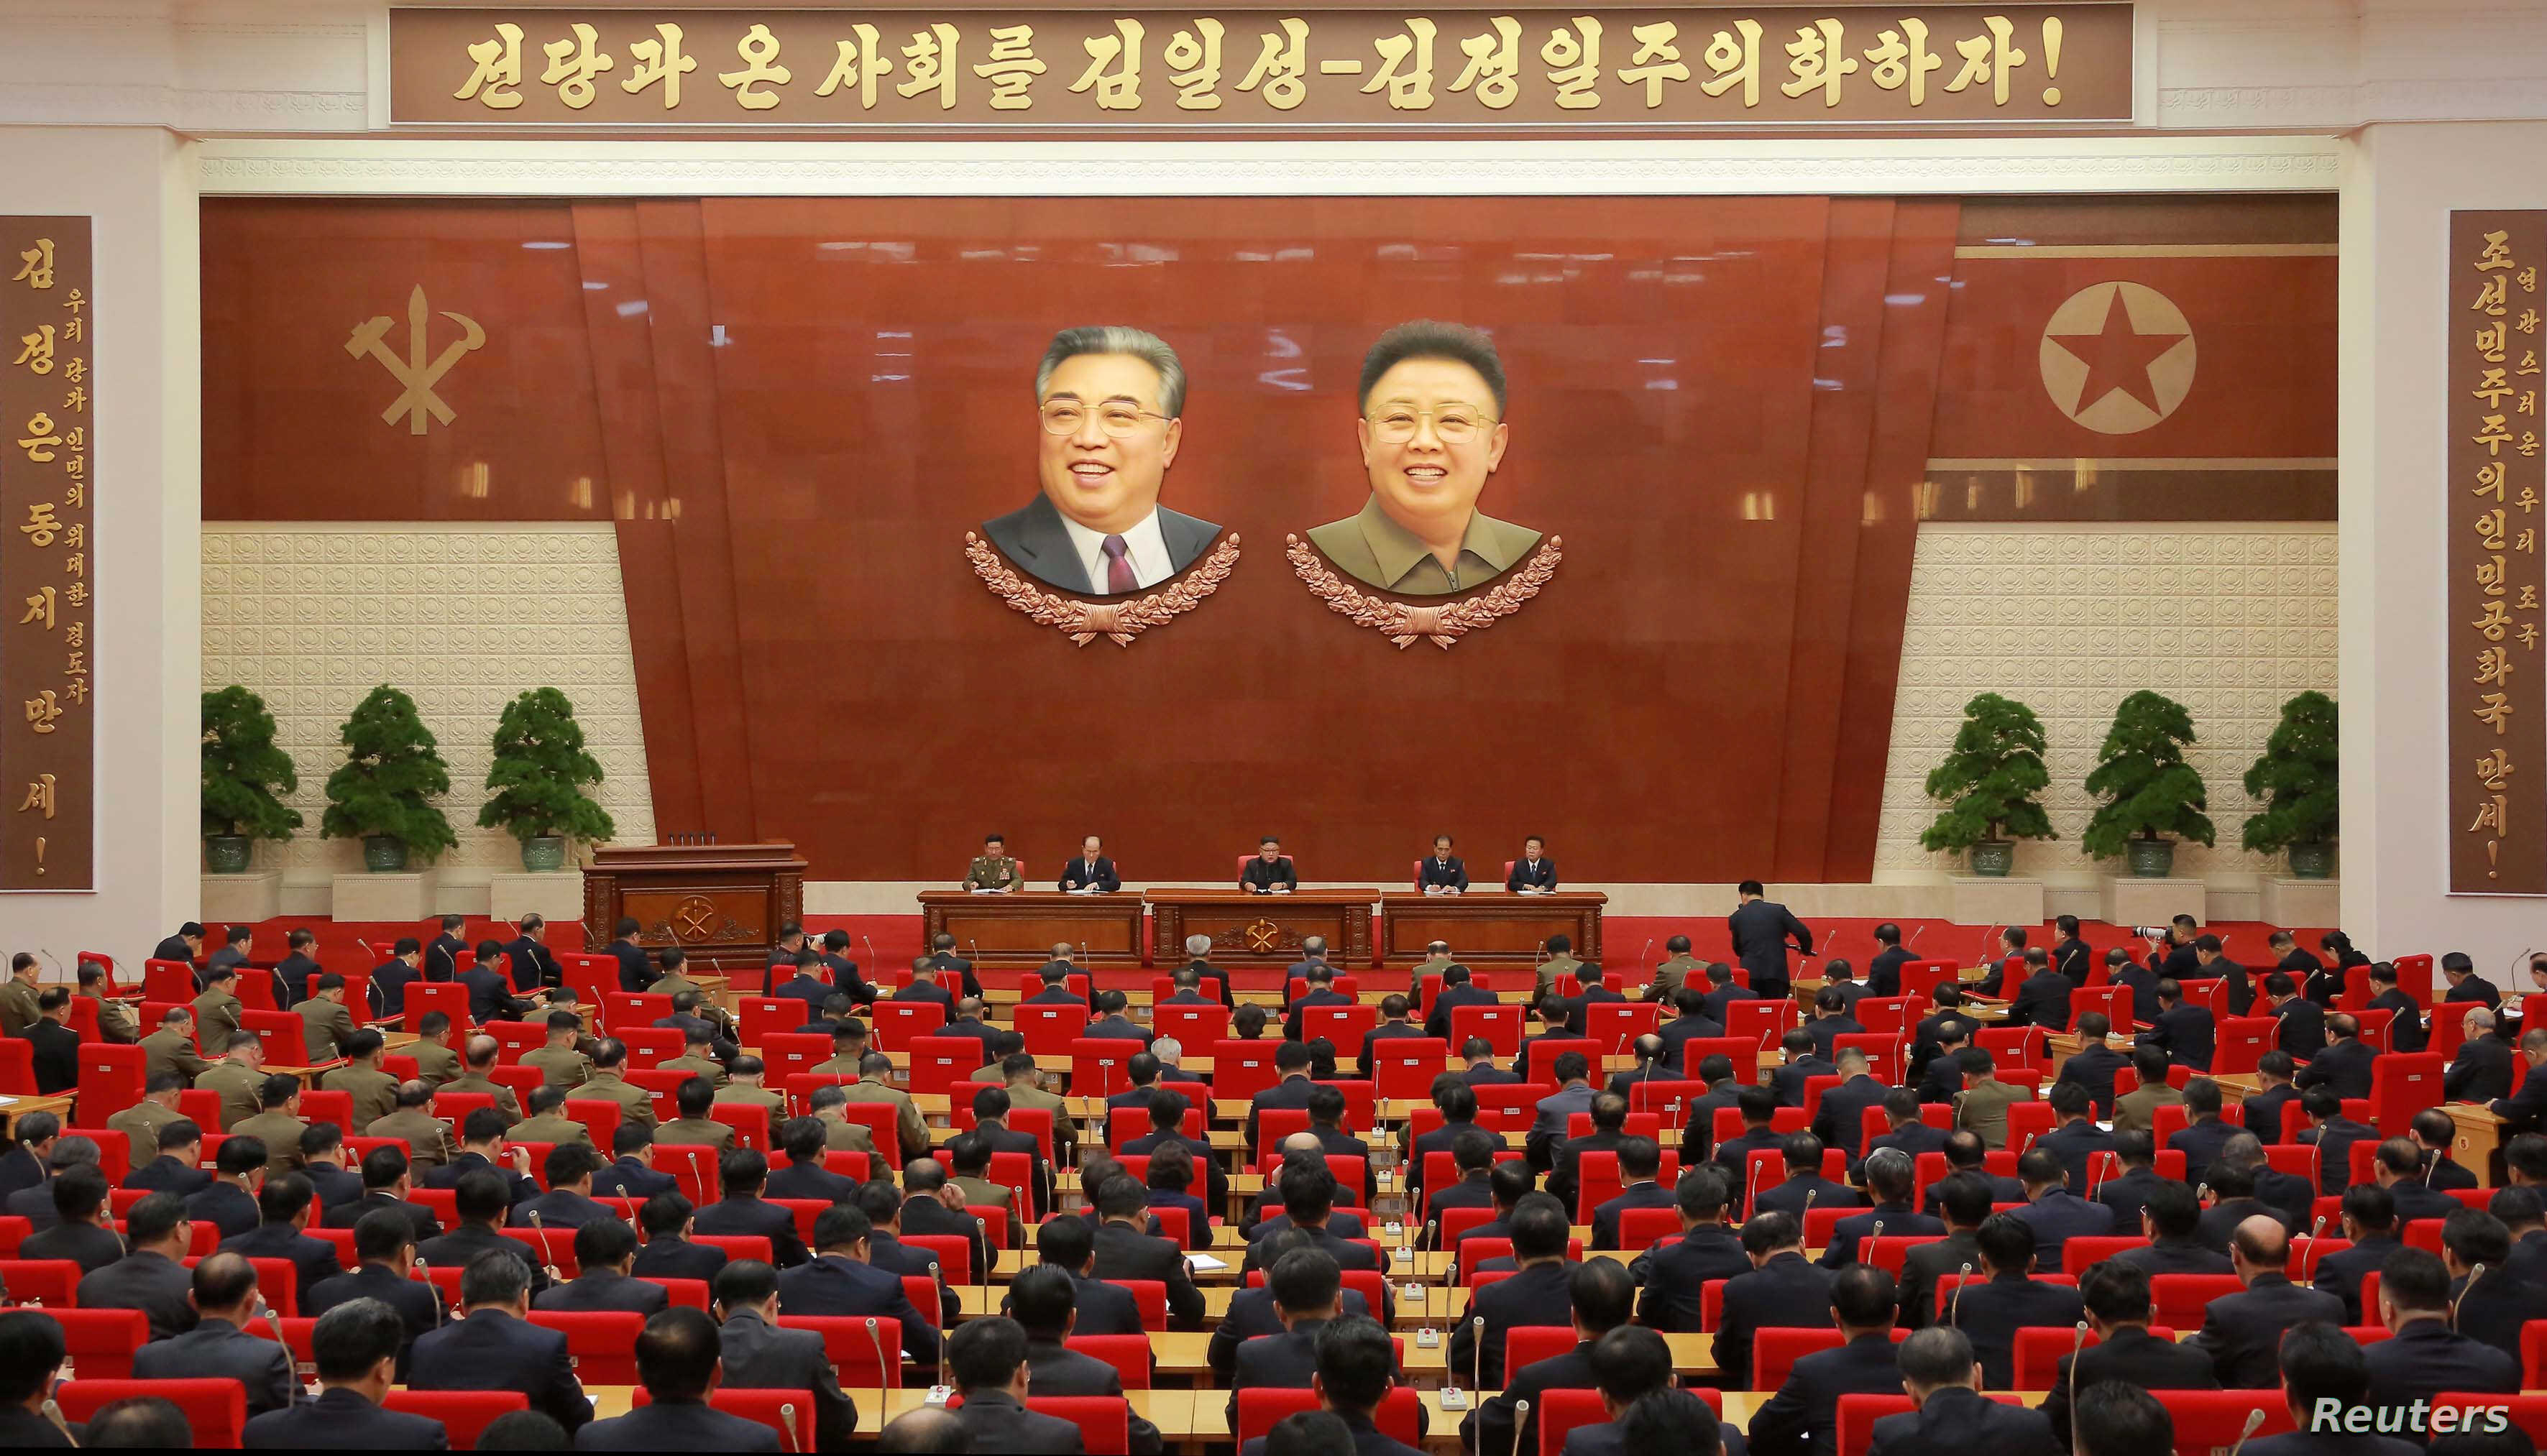 North Korean leader Kim Jong Un speaks during the Second Plenum of the 7th Central Committee of the Workers' Party of Korea (WPK) at the Kumsusan Palace of the Sun, in this undated photo released by North Korea's Korean Central News Agency in Pyongya...